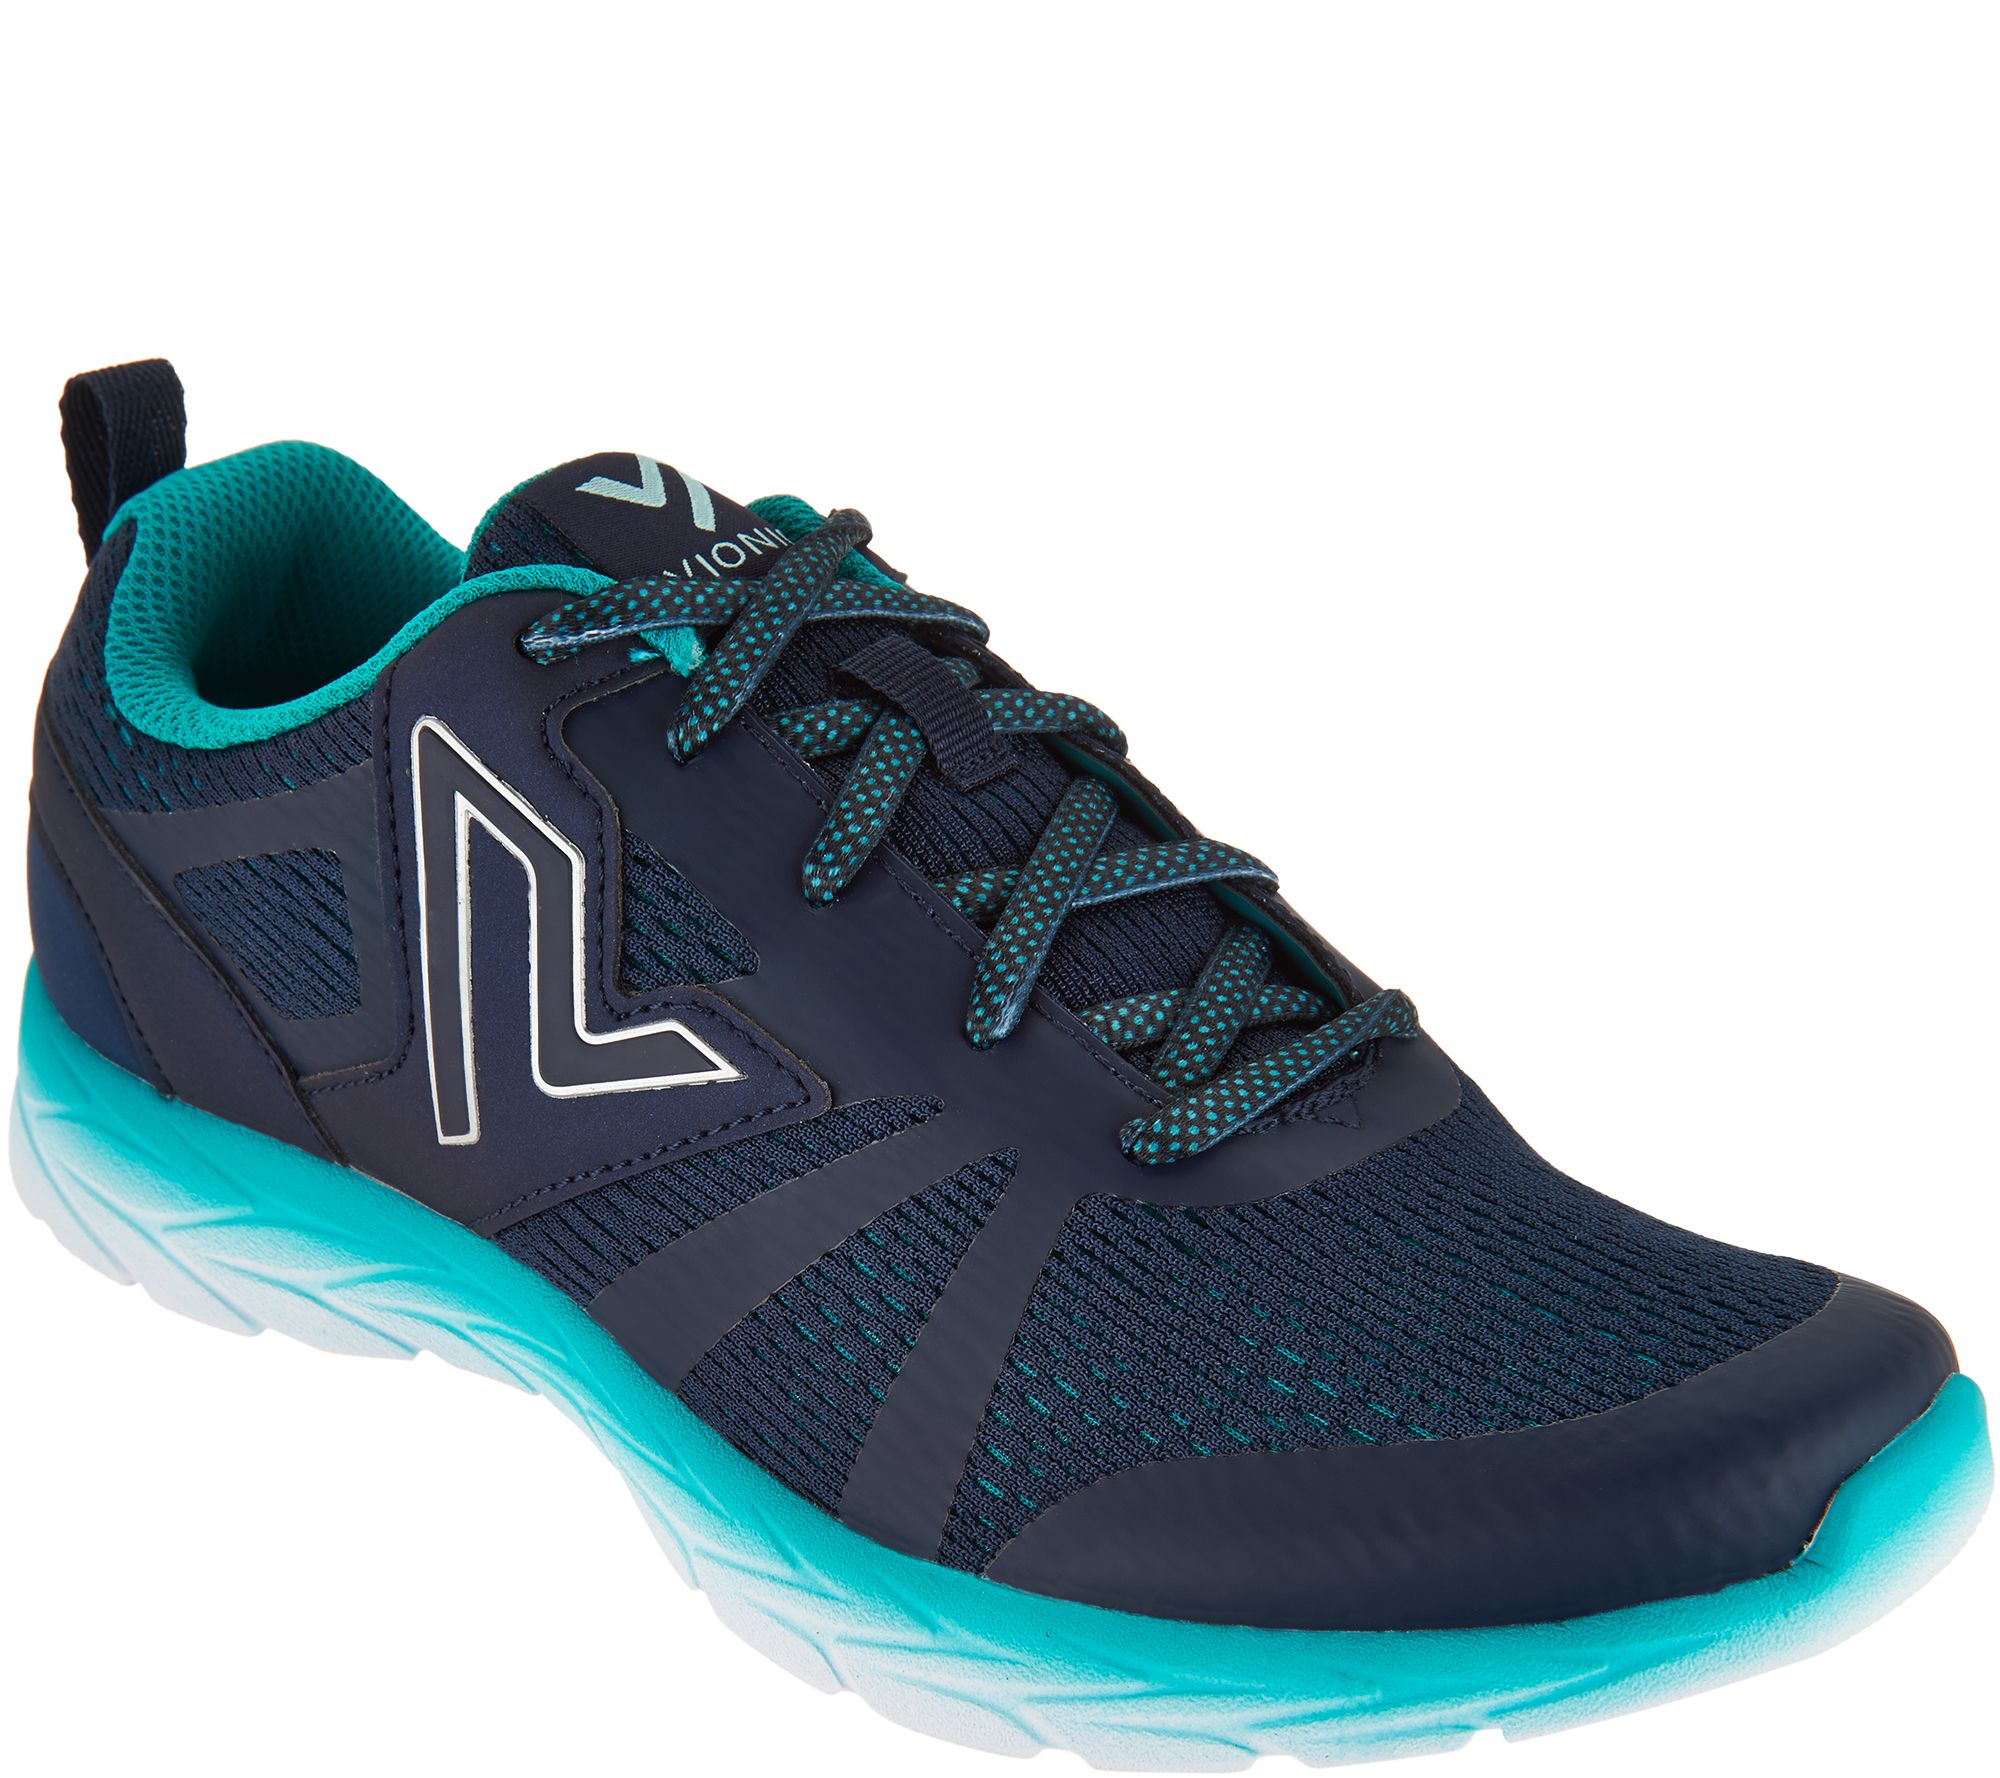 Vionic Orthotic Mesh Lace-up Sneakers - Miles - A293524